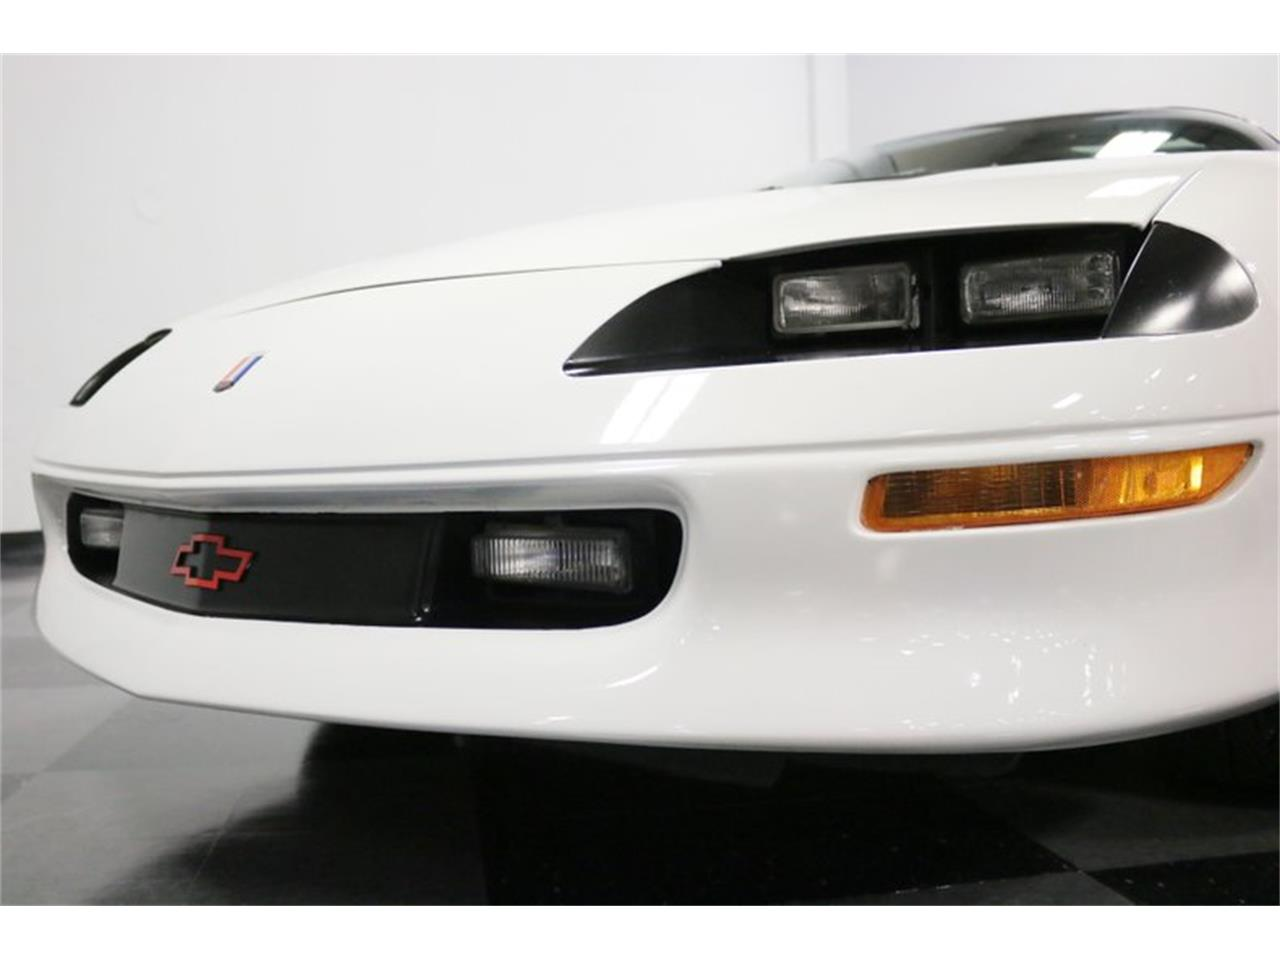 1996 Chevrolet Camaro (CC-1276247) for sale in Ft Worth, Texas